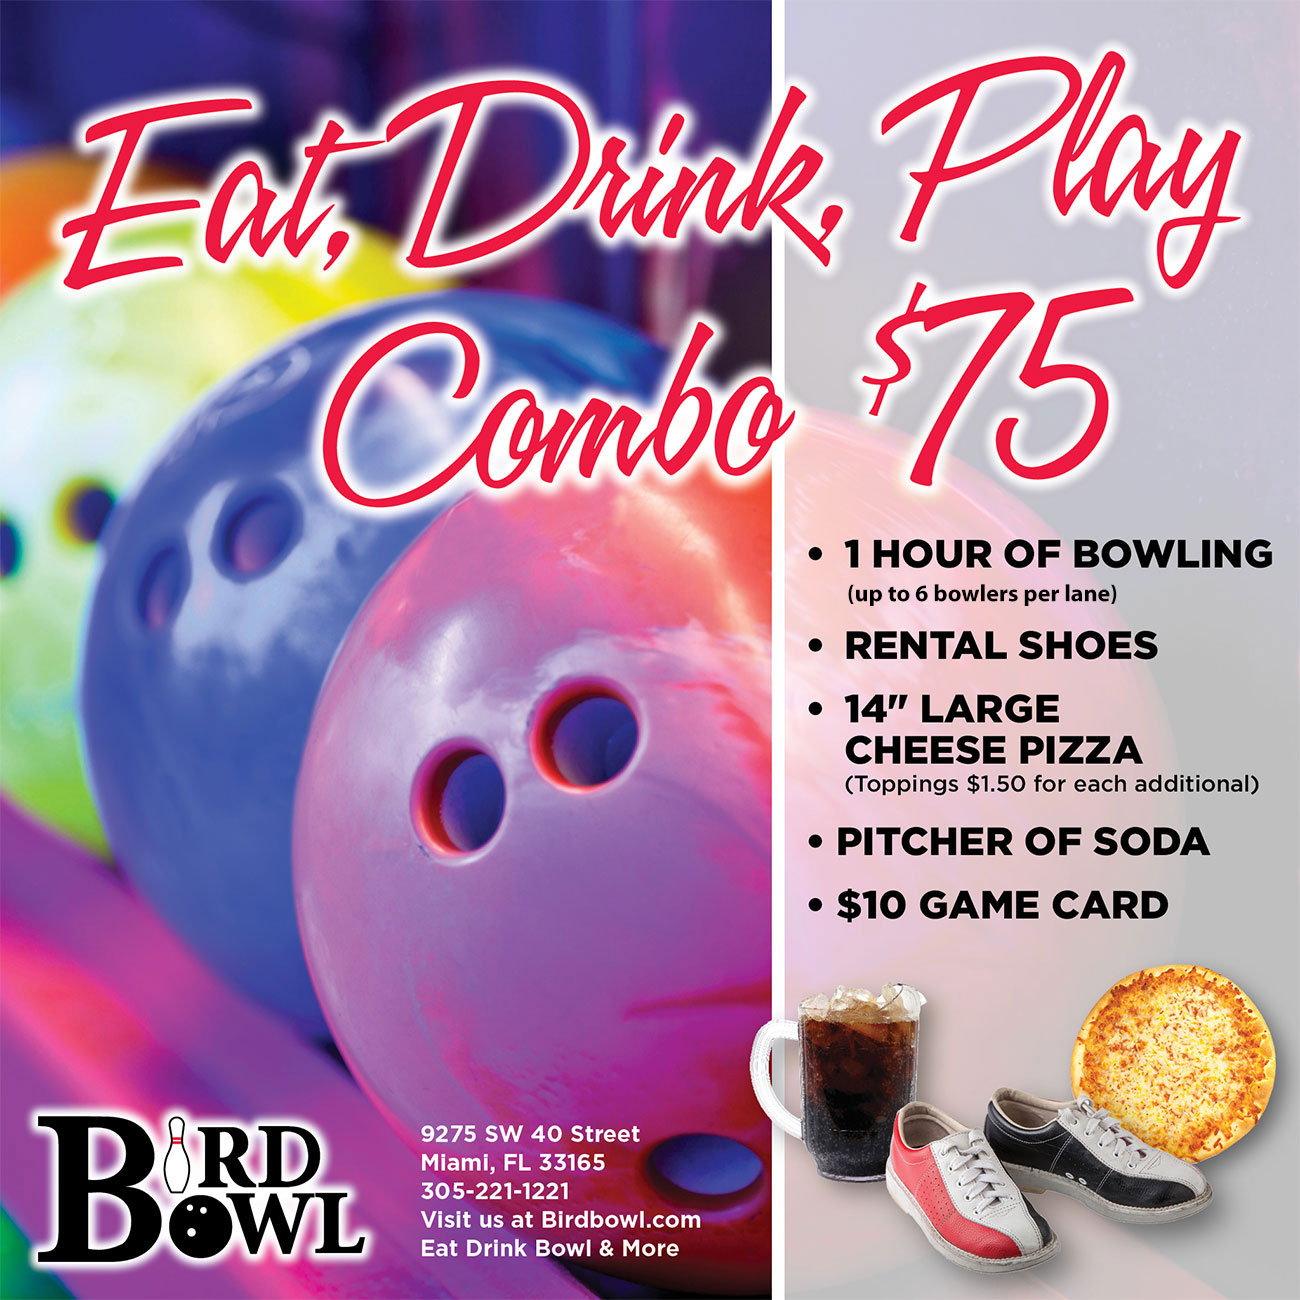 Eat, Drink, Play Combo